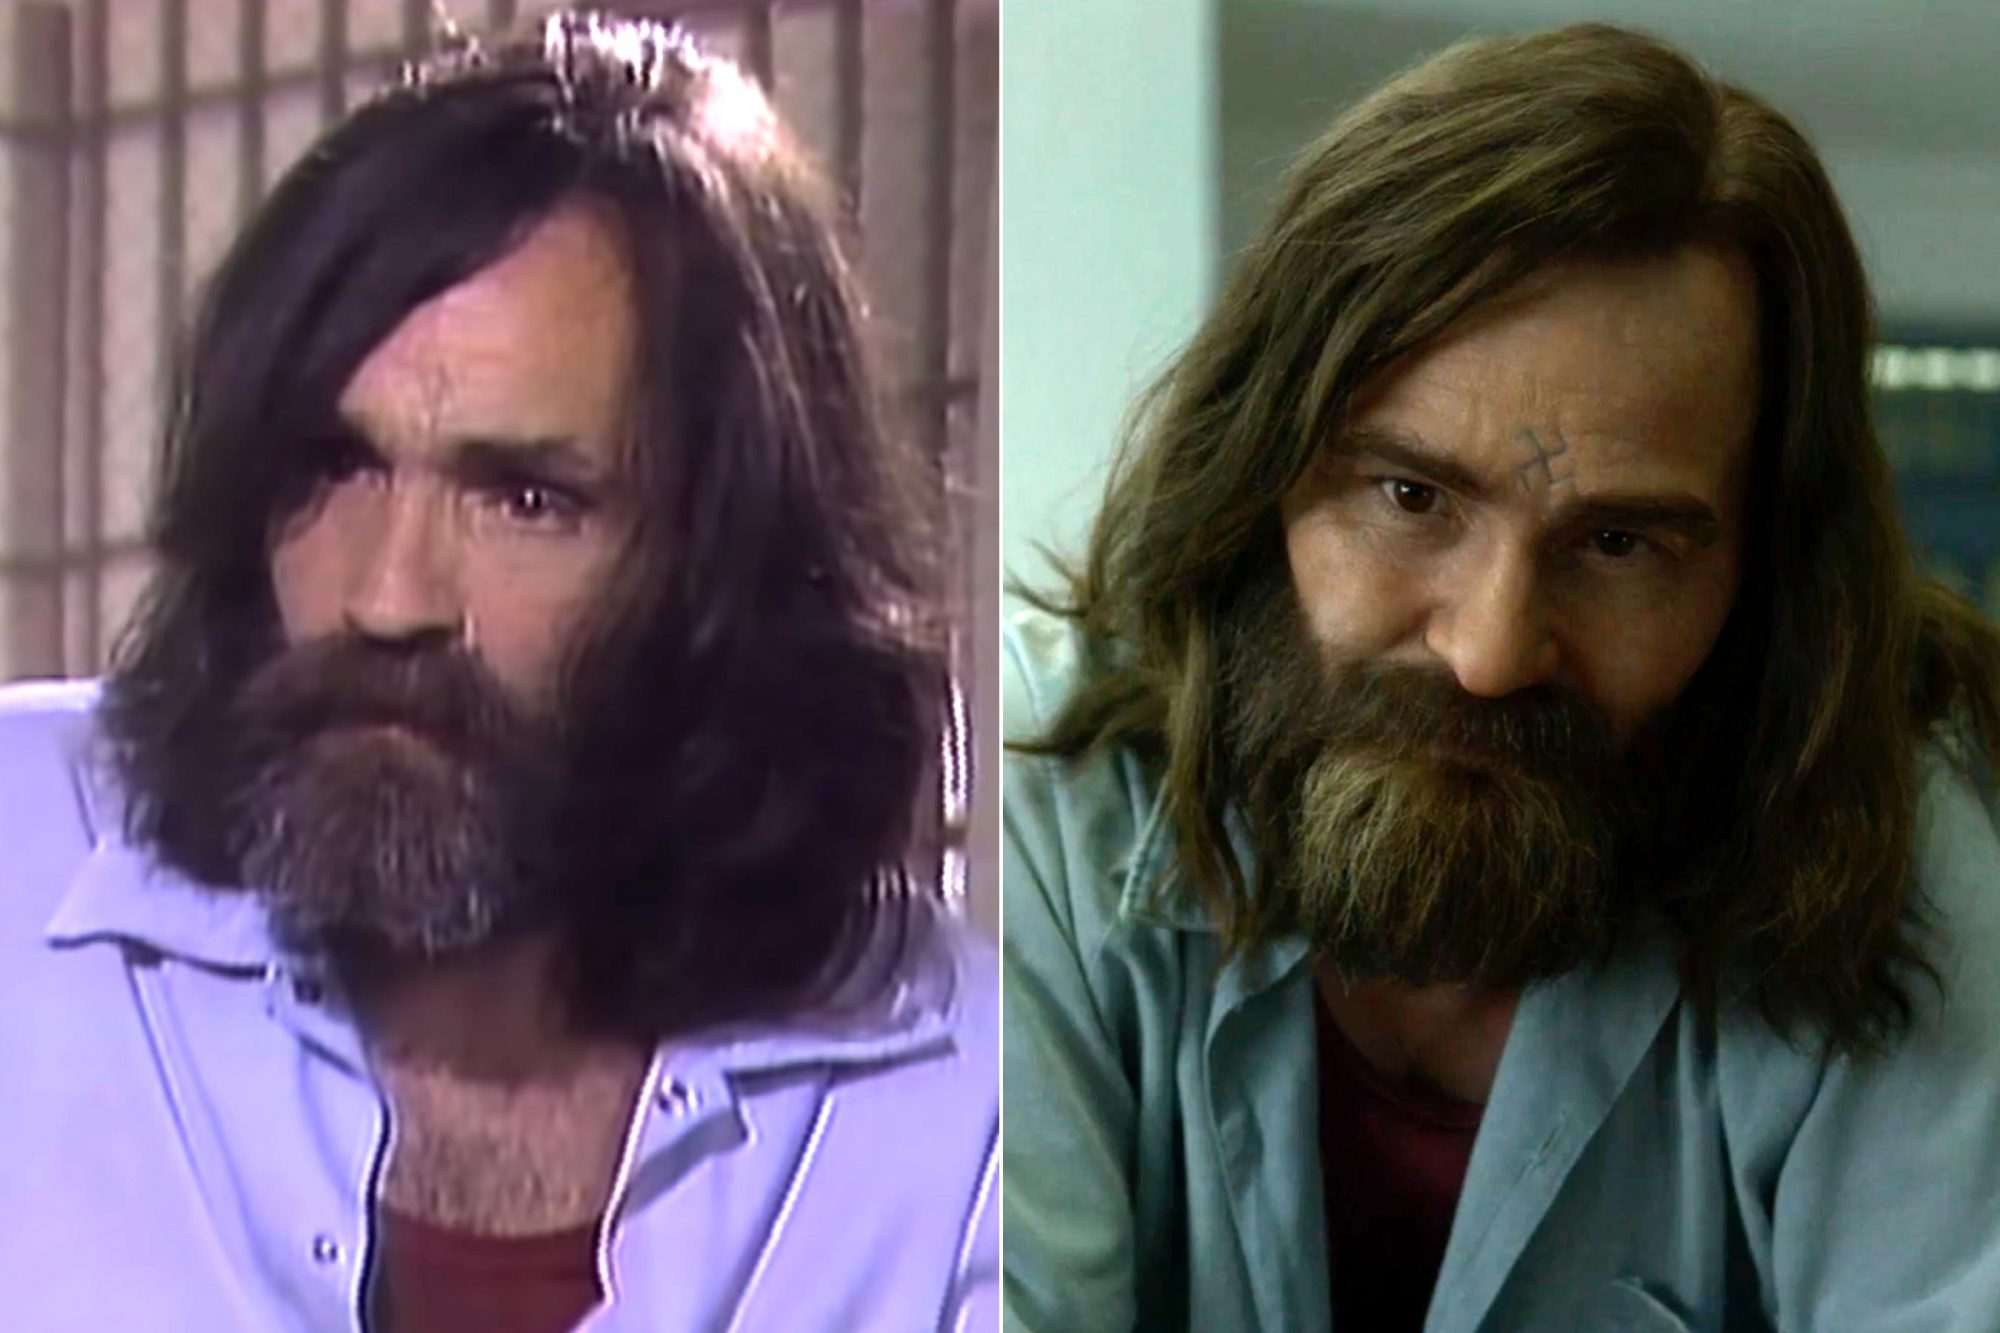 Charles Manson 60 Minutes Australia Interview https://www.youtube.com/watch?v=JbW0agGFv88 CR: 60 Minutes Australia/YouTube MINDHUNTER Season 2 Damon Herriman as Charles Manson CR: Netflix